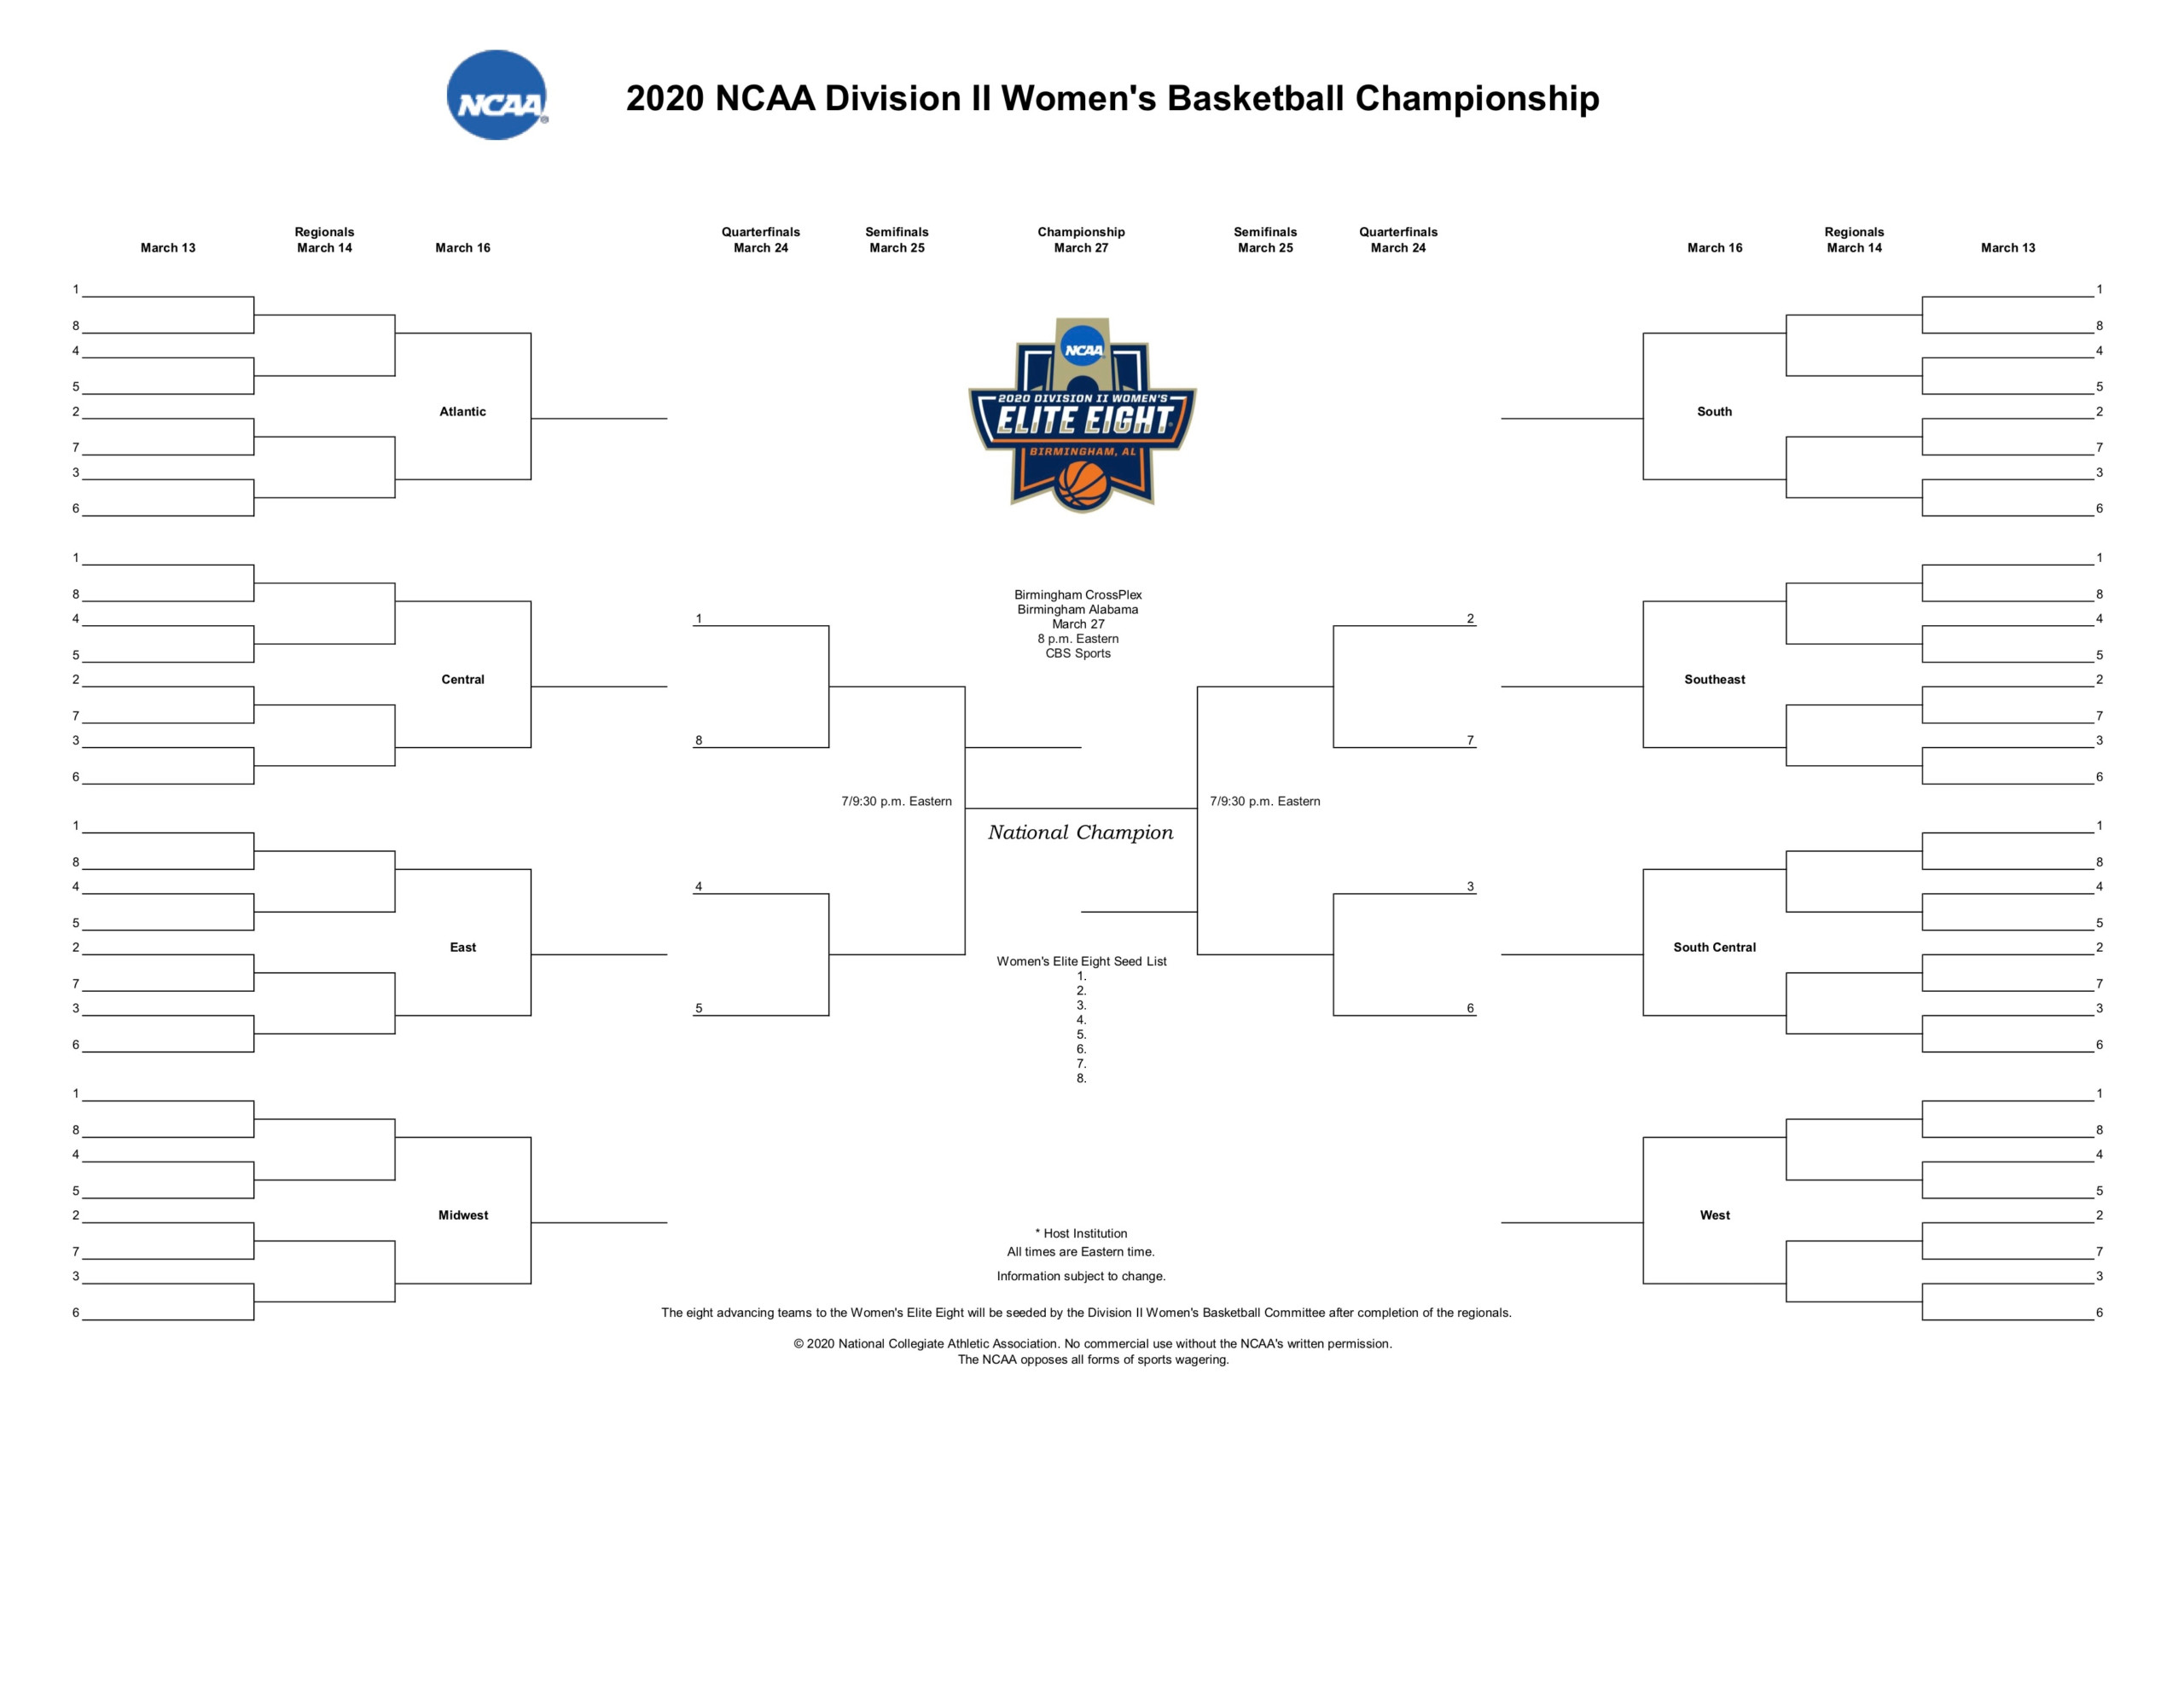 2020 Ncaa Dii Bracket: Printable Dii Women's Basketball Within Ncaa Bracket 2020 Printable March Madness Bracket .pdf